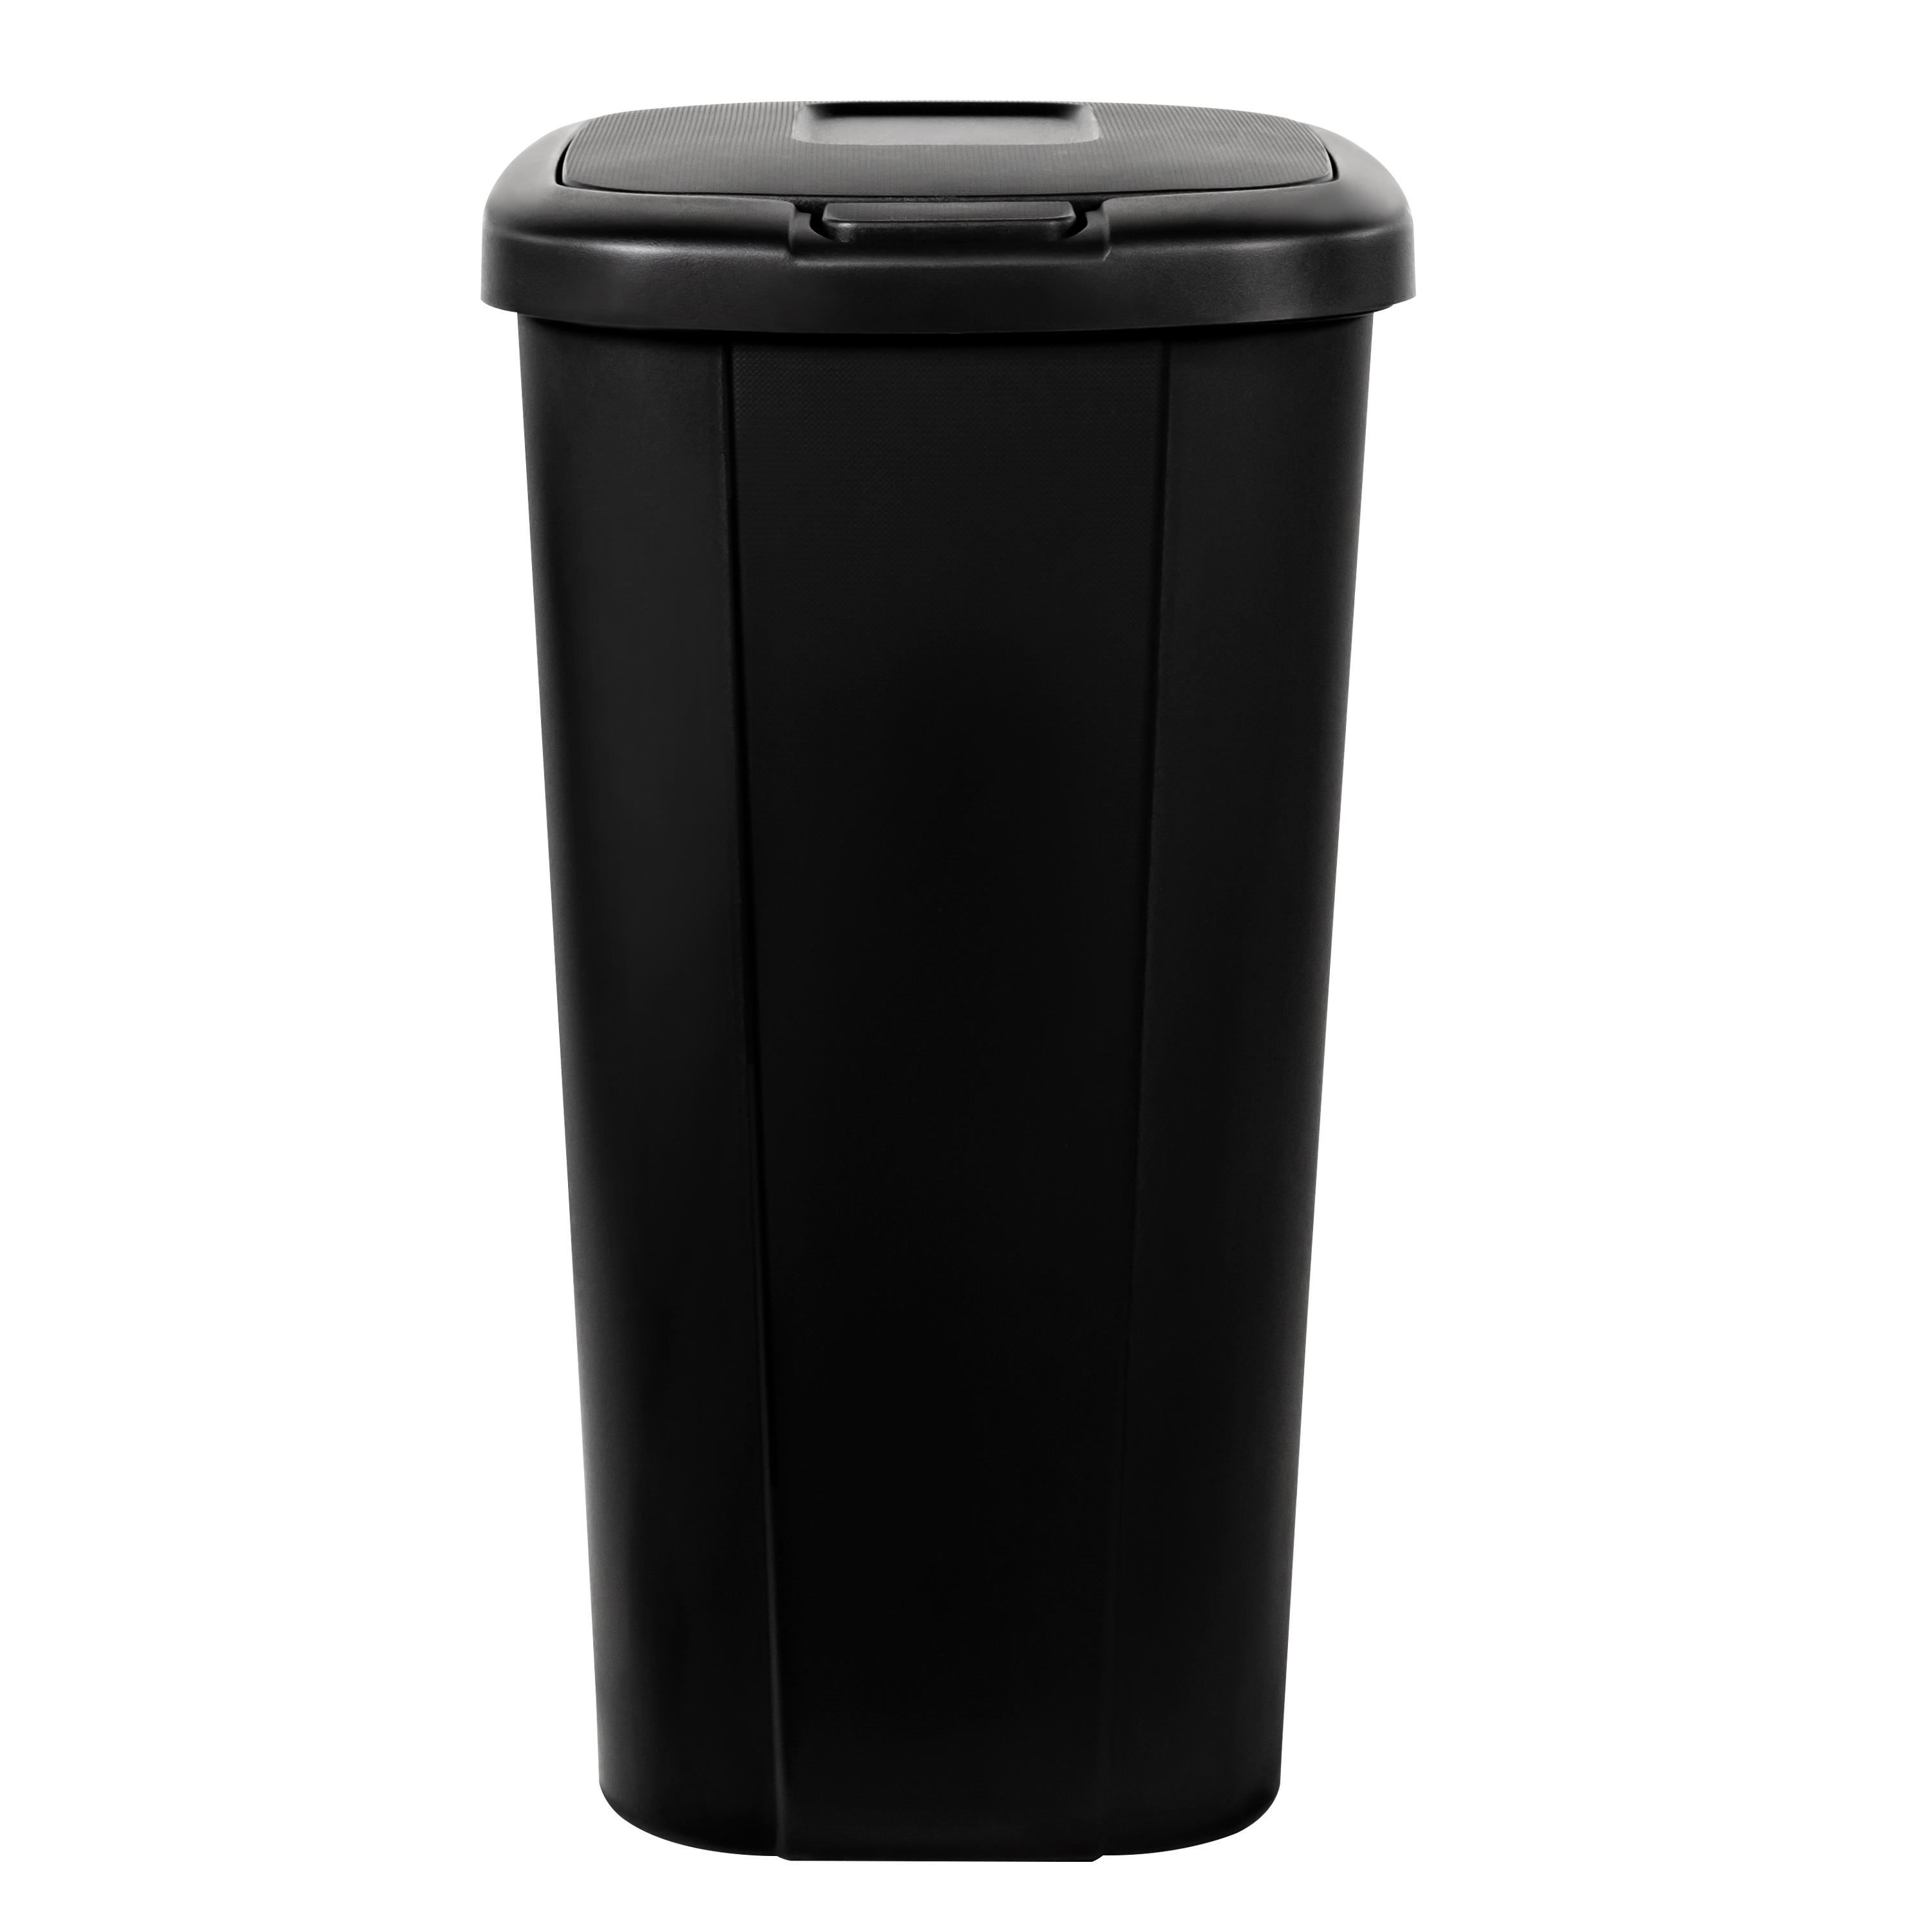 Trash Can 13.3 Gallon Touch-Lid Plastic Kitchen Garbage Recycle Bin Black